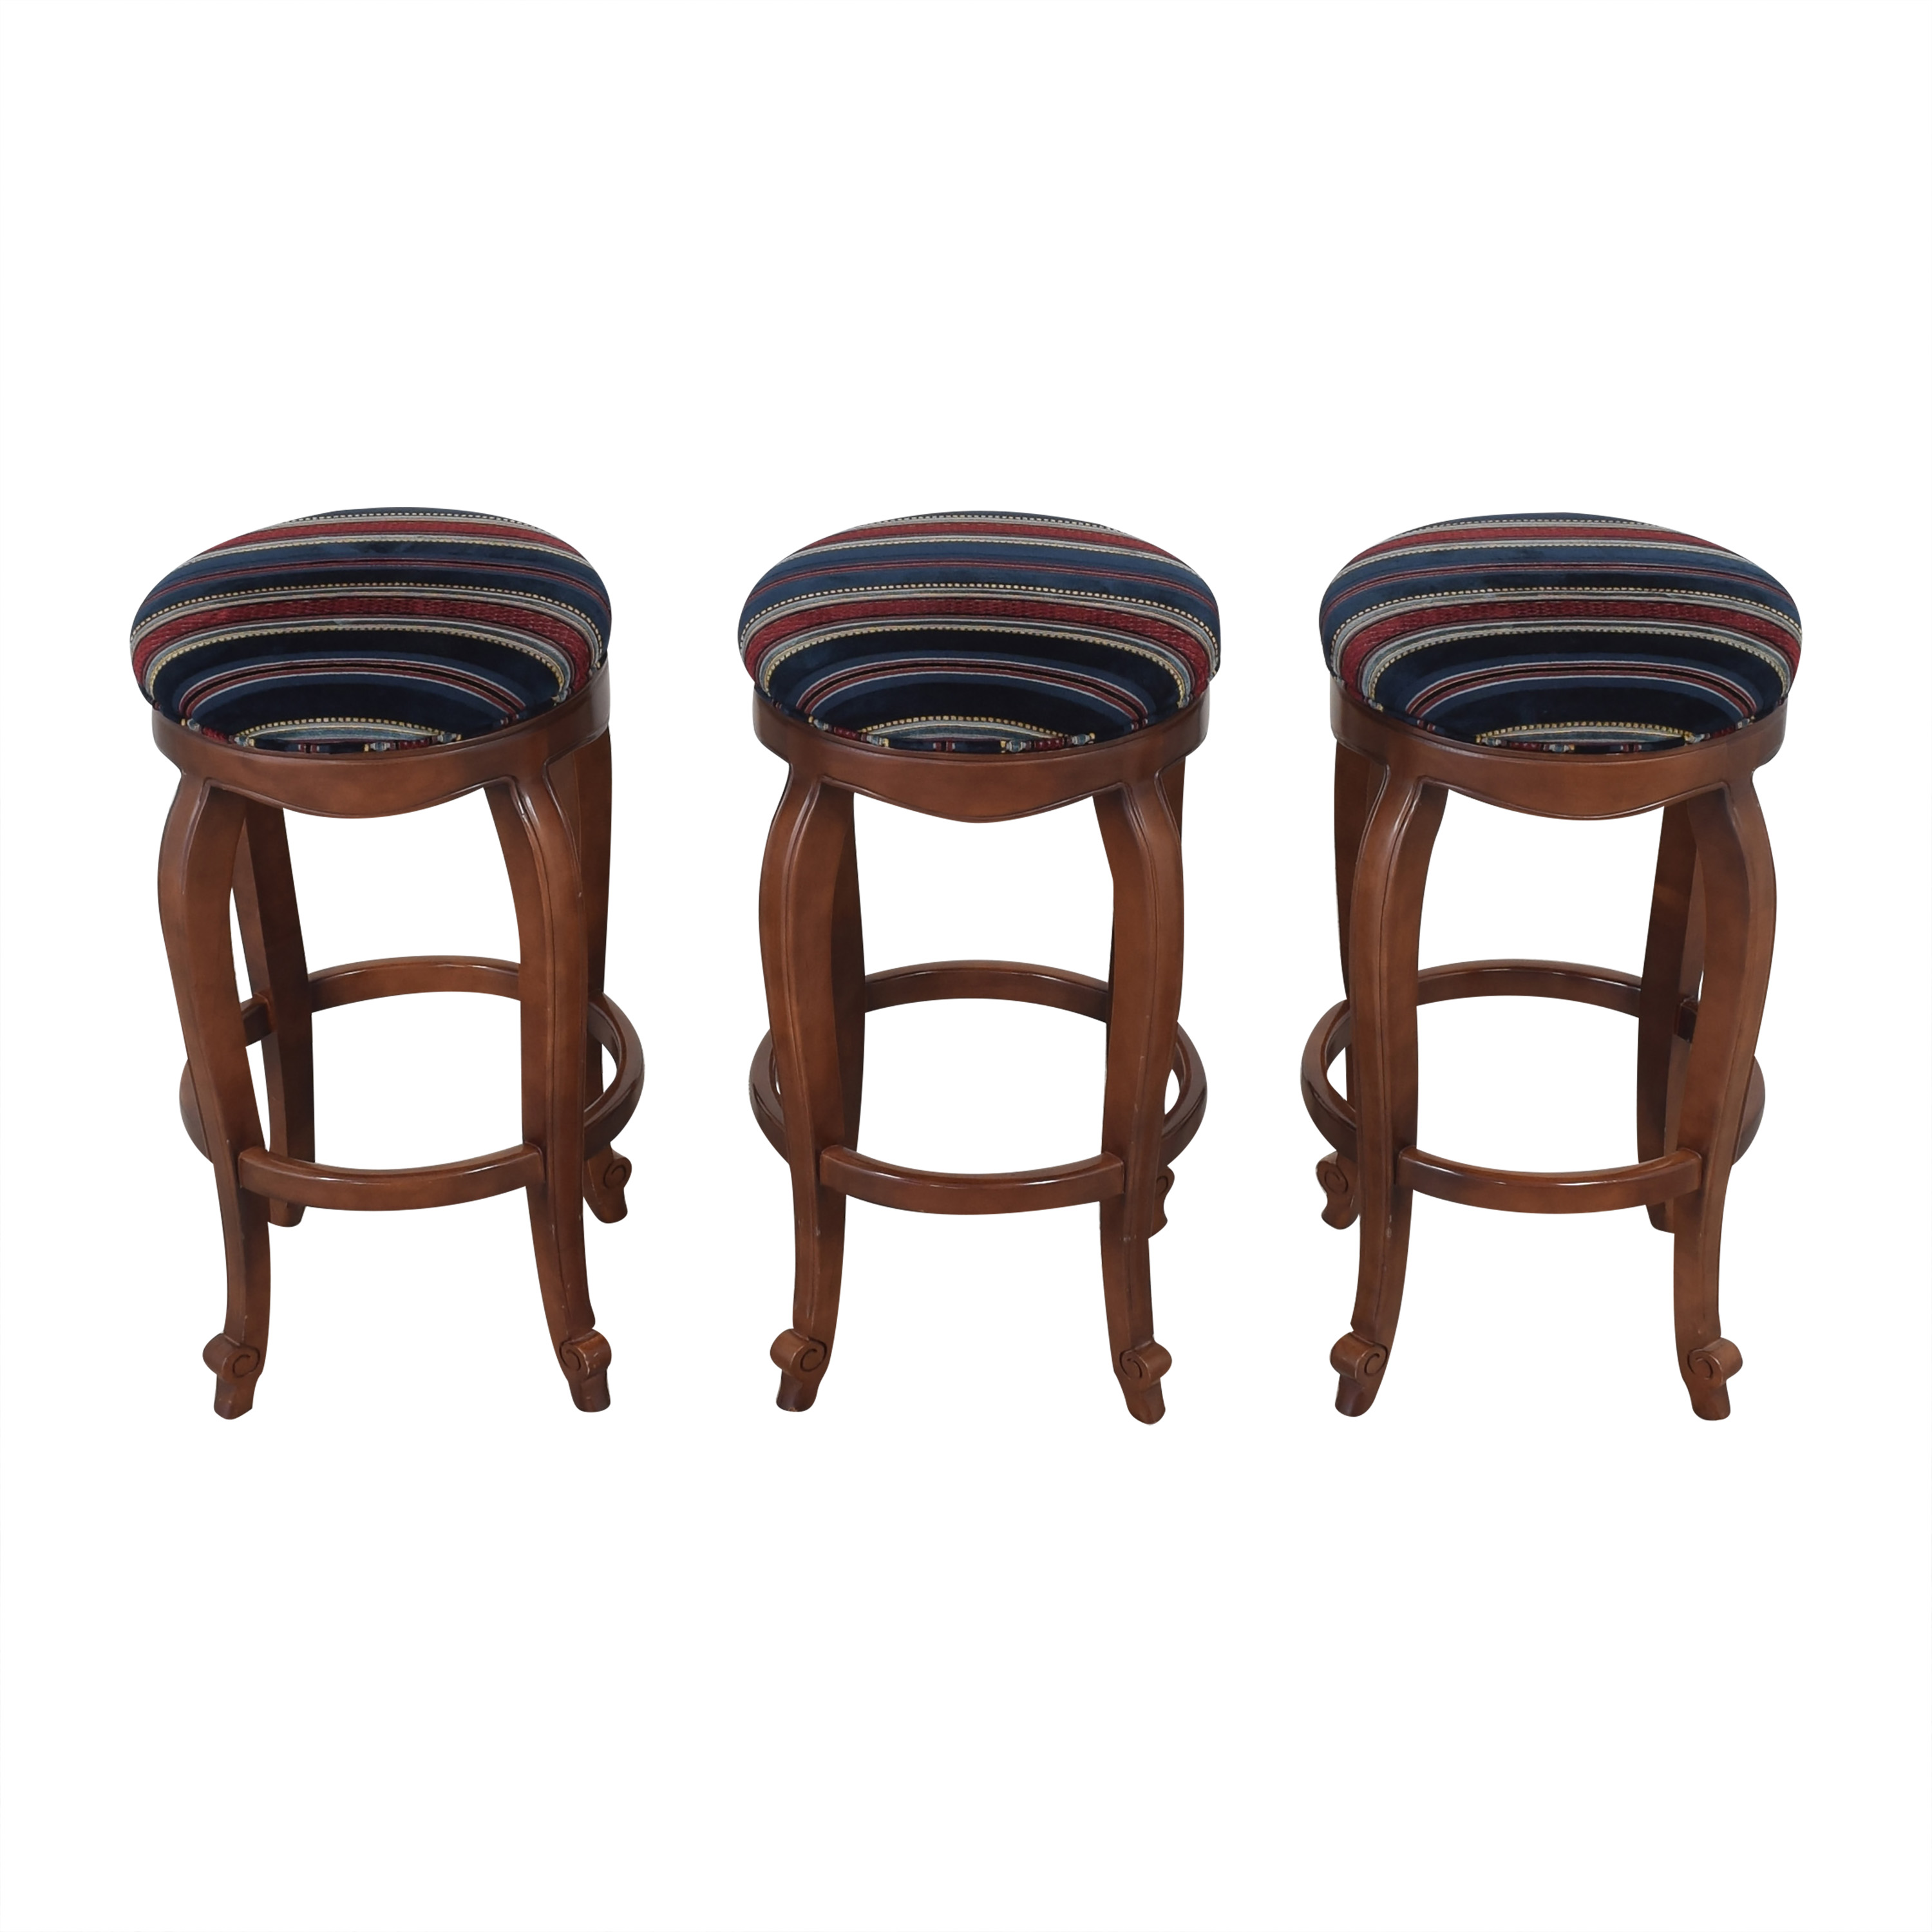 Hancock and Moore Hancock and Moore Burberry Bar Stools  ct